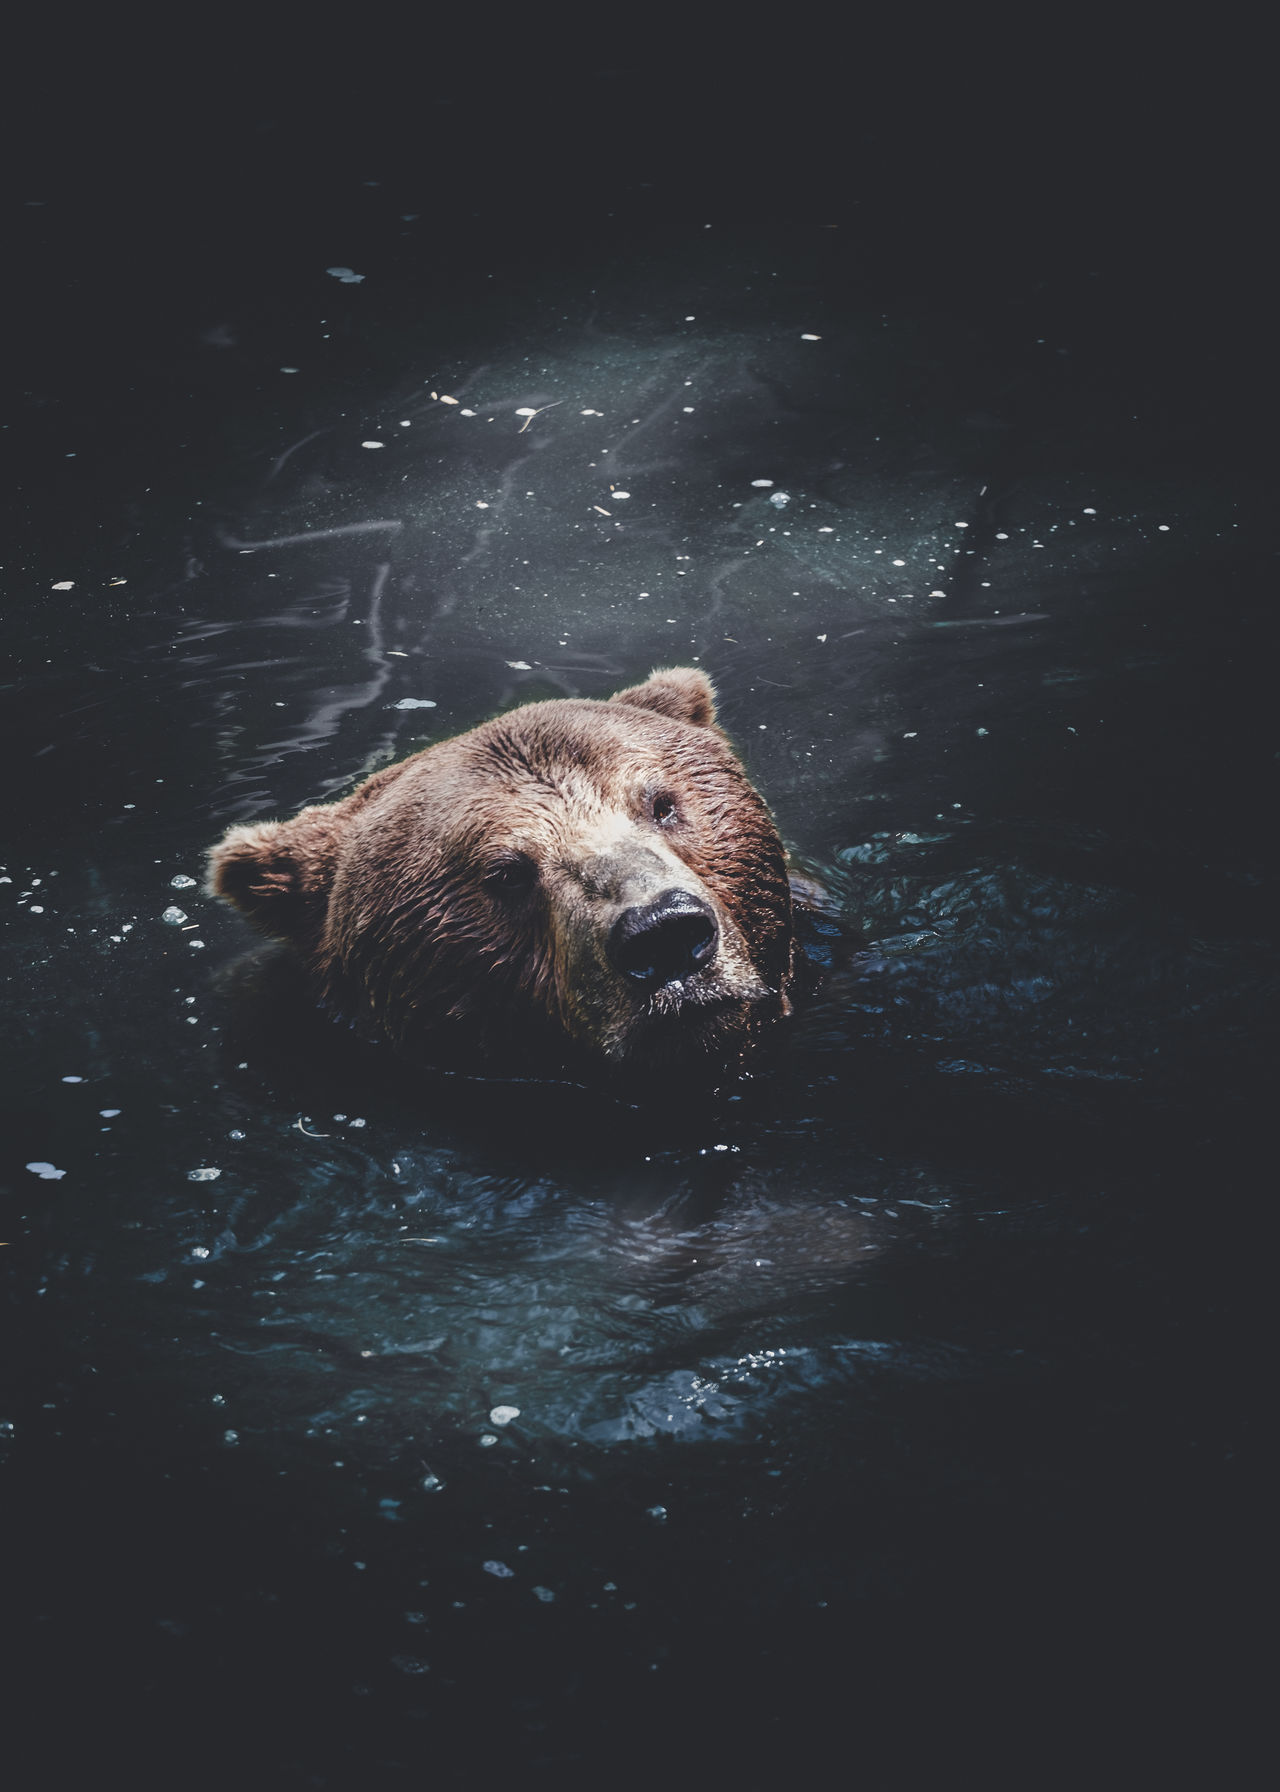 Hello. Equipment: Fujifilm X-T1 + XF18-55 www.instagram.com/nils_leithold www.facebook.com/nleithold.photography Alaska Animal Wildlife Bear Brown Brownbear Day Ear EyeEm Best Shots Eyes Face Fuji Grizzly Mammal Motion Nature No People One Animal Out Outdoors Water Wilderness Wildlife